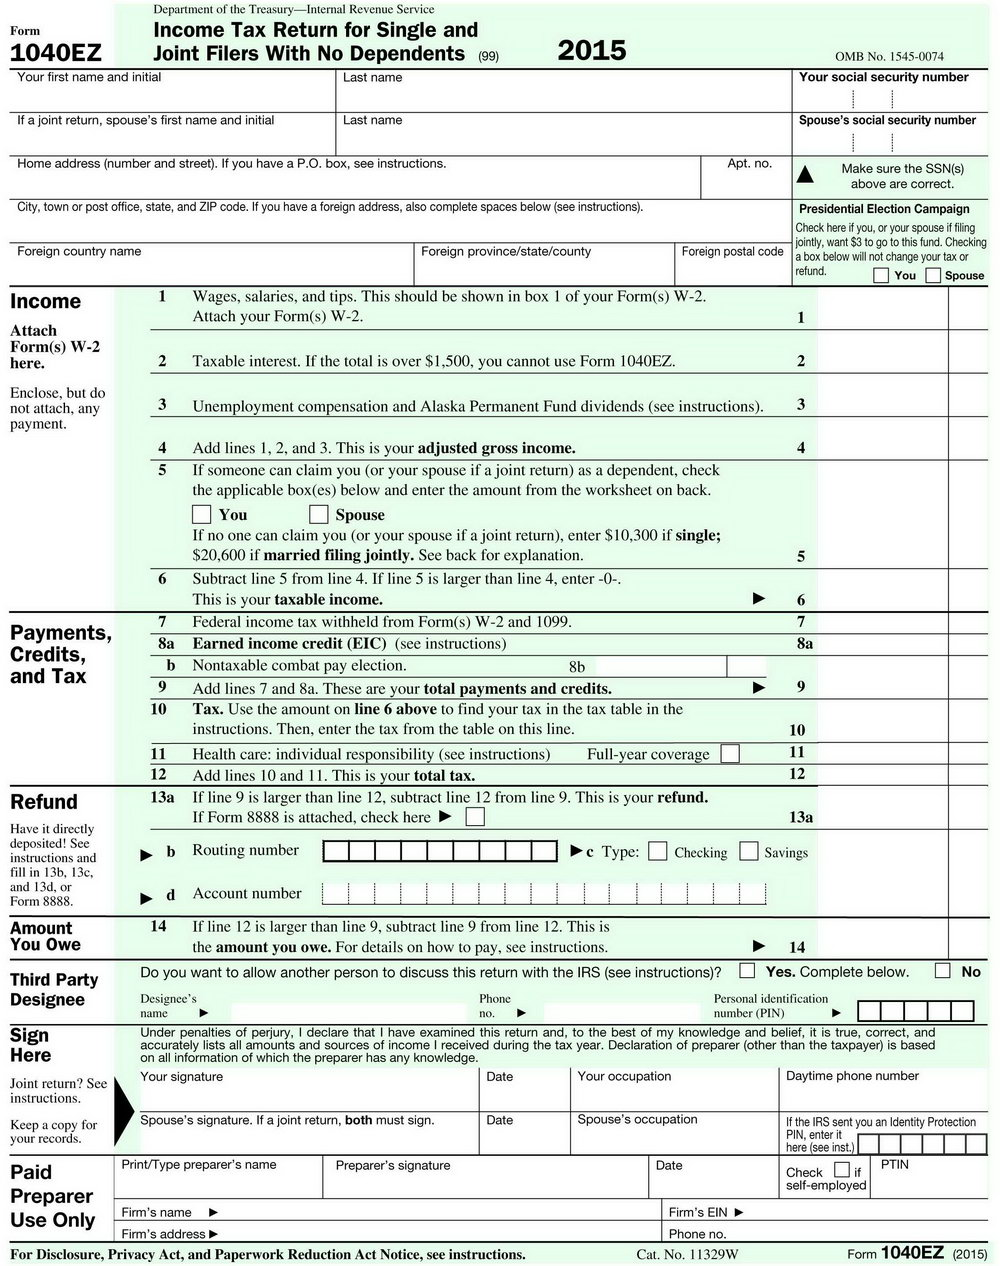 Irs Forms 1040ez Instructions